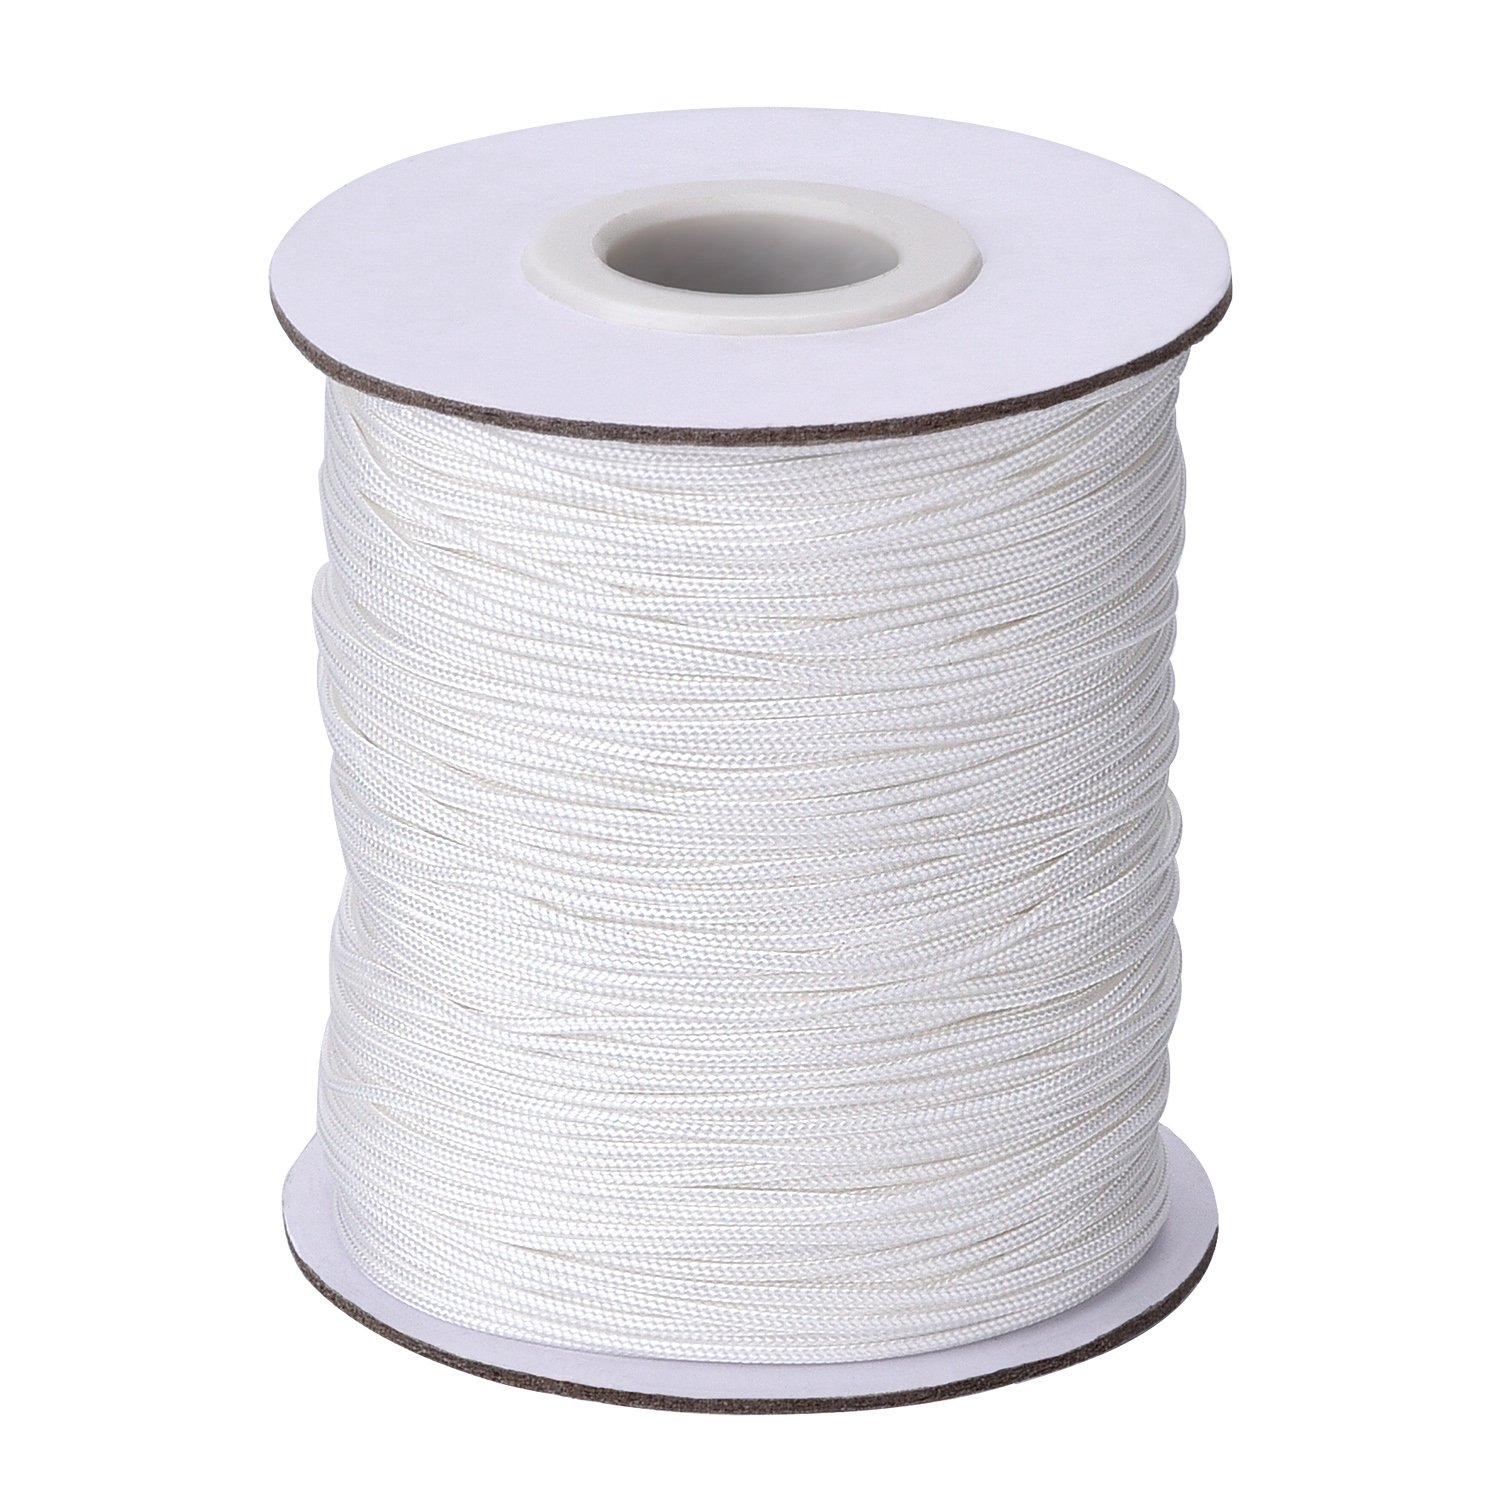 109 Yards/ Roll White Braided Lift Shade Cord for Aluminum Blind Shade, Gardening Plant and Crafts (1.0 mm) Outus 4337027909